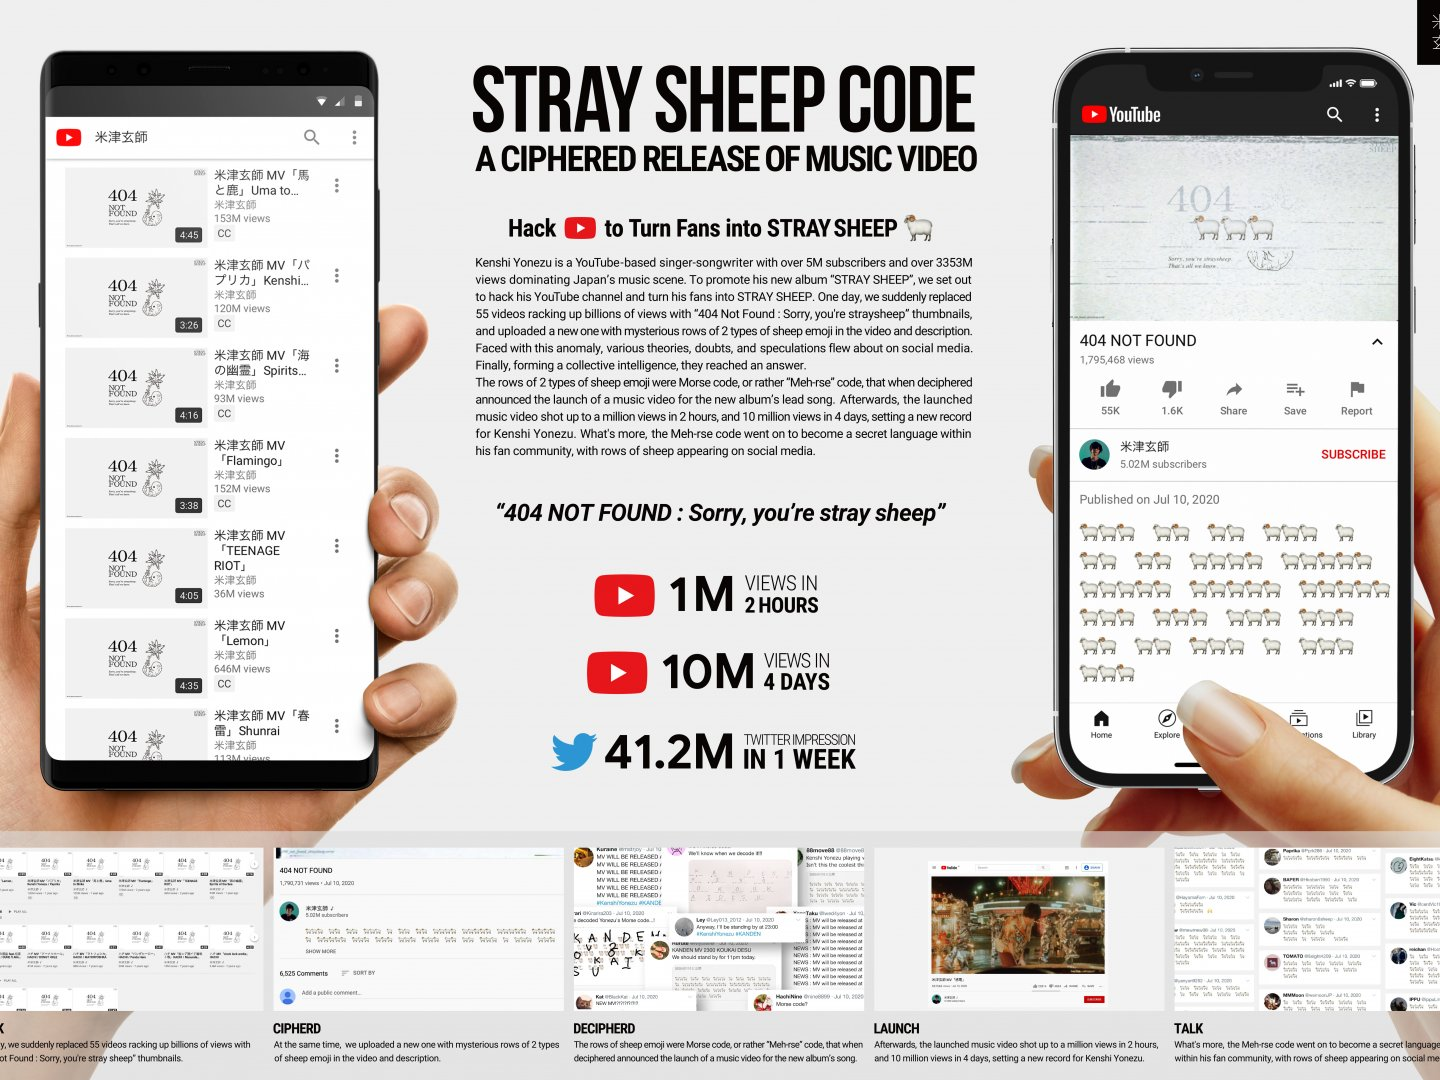 A Ciphered Release of Music Video : STRAY SHEEP CODE Thumbnail